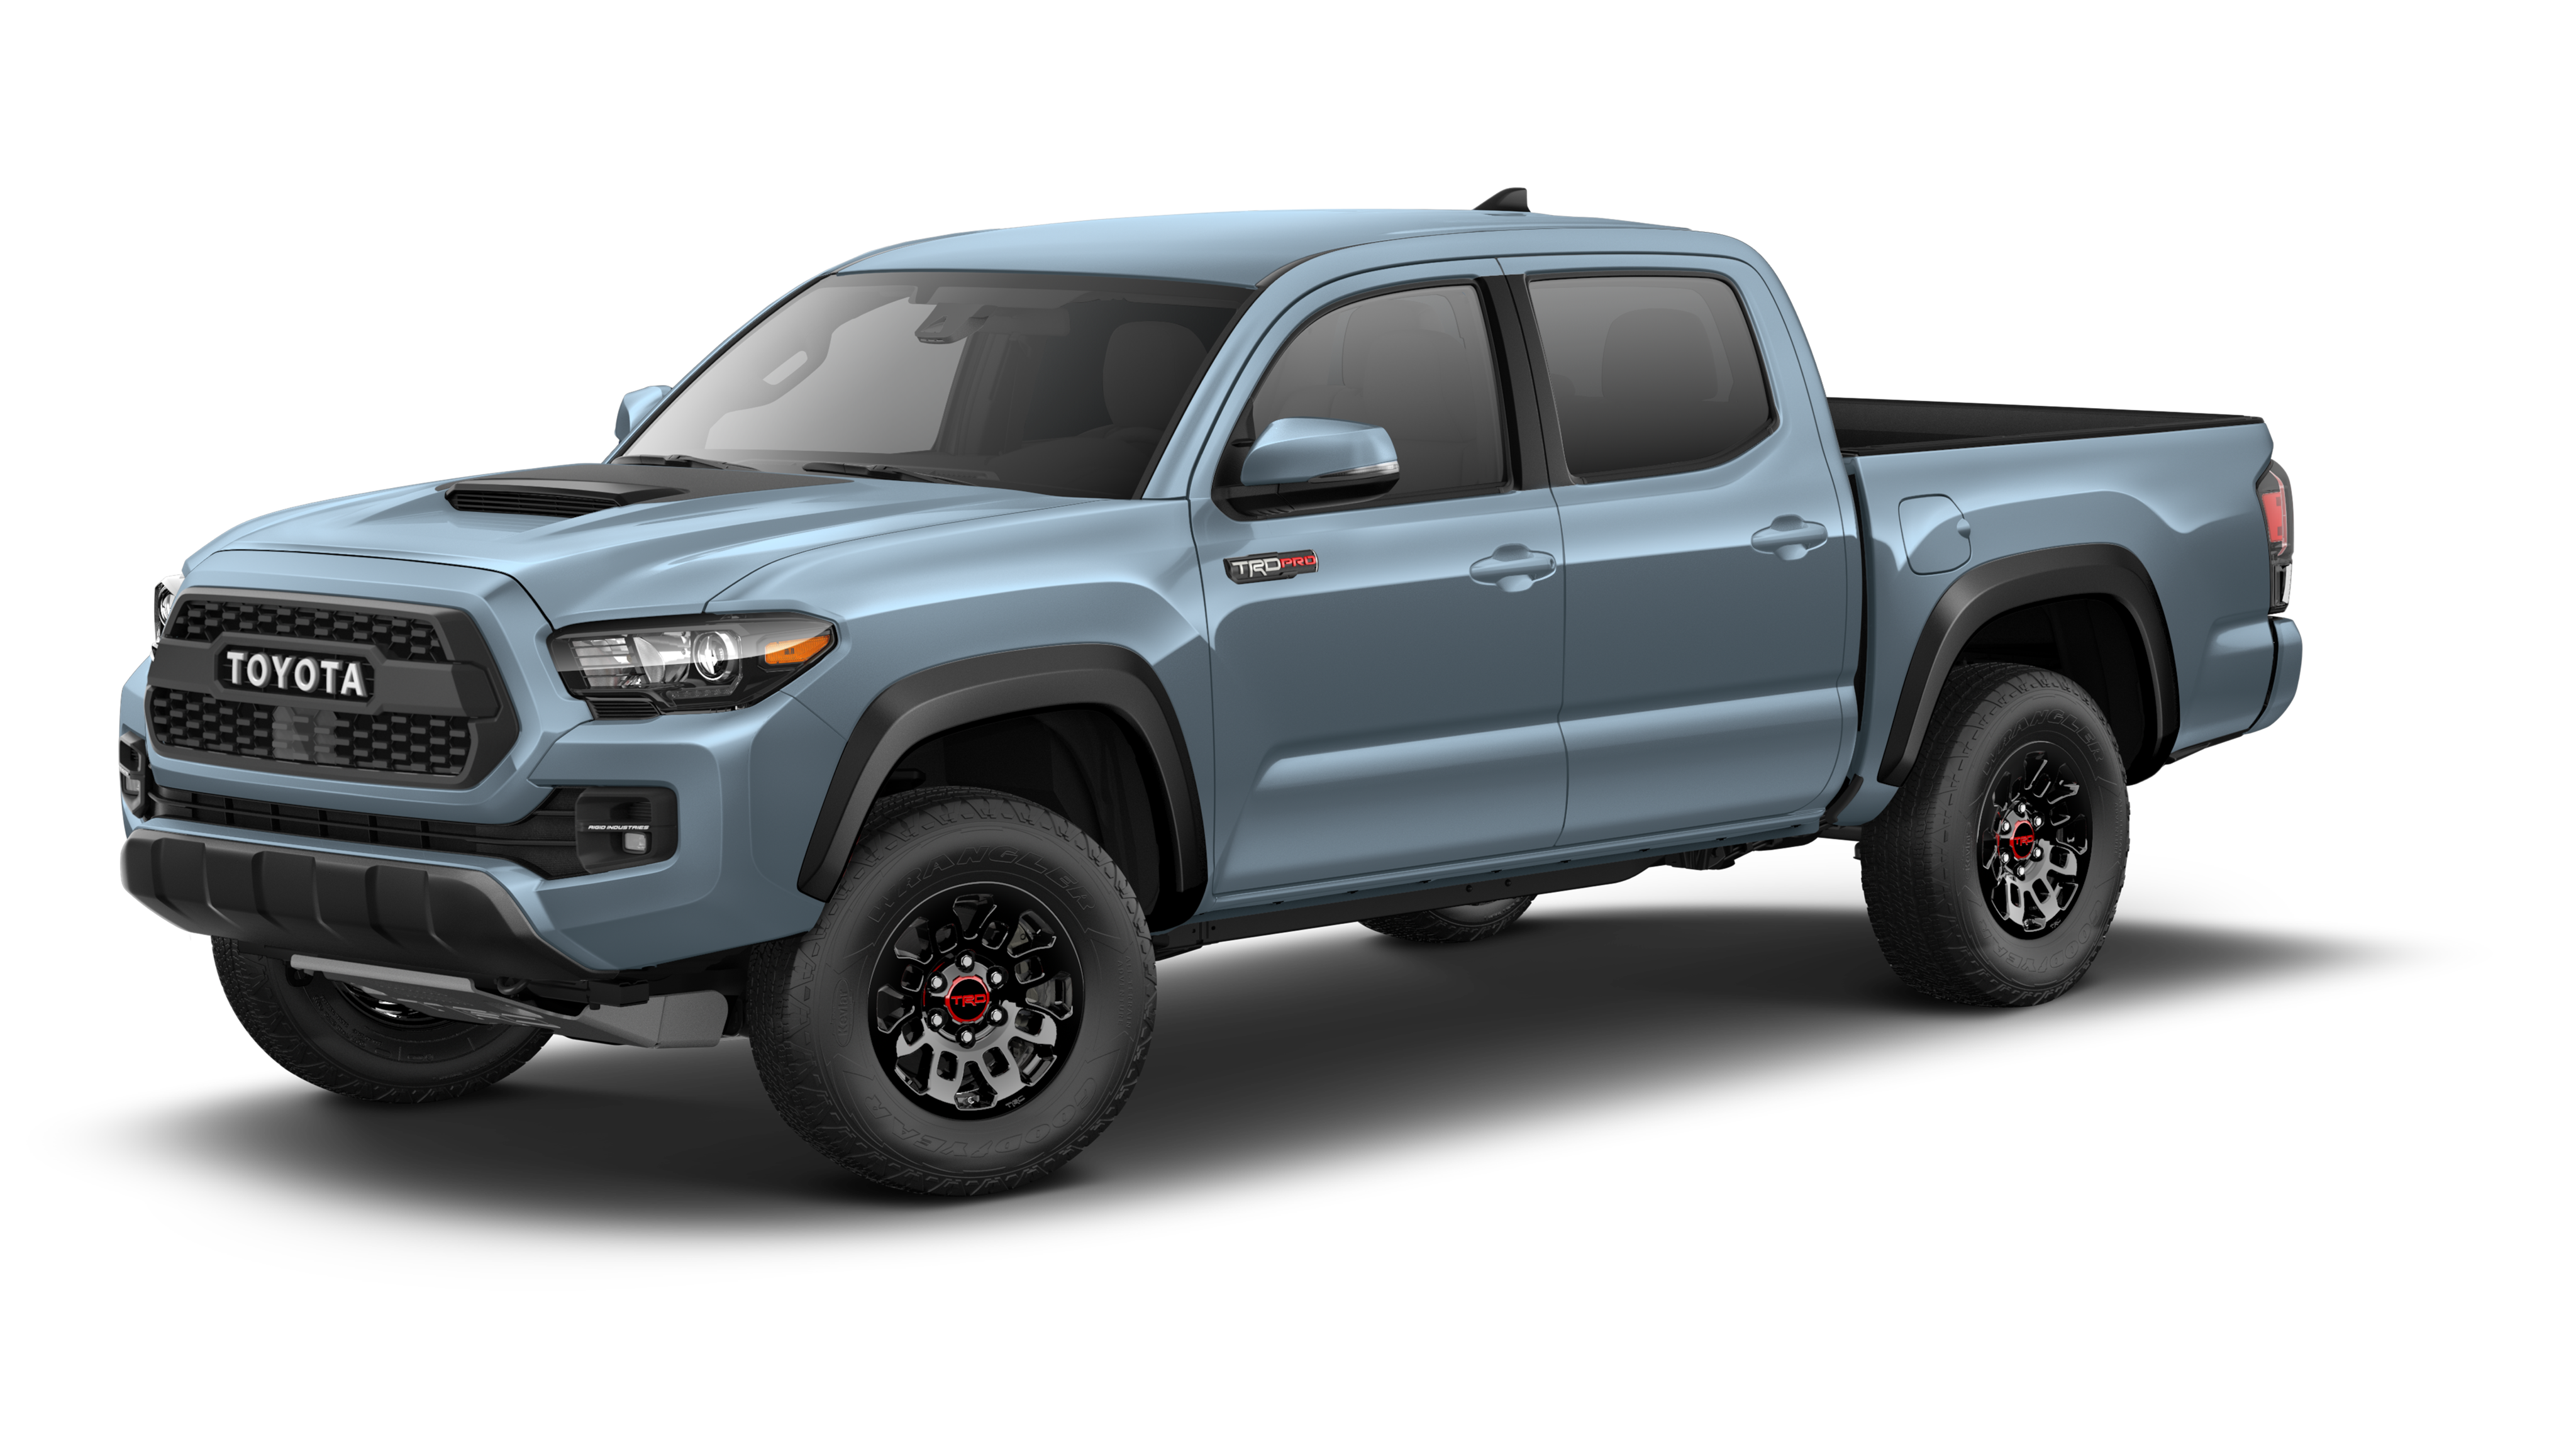 Review of 2019 Toyota Tacoma Here at Larry H Miller Toyota Corona near Corona